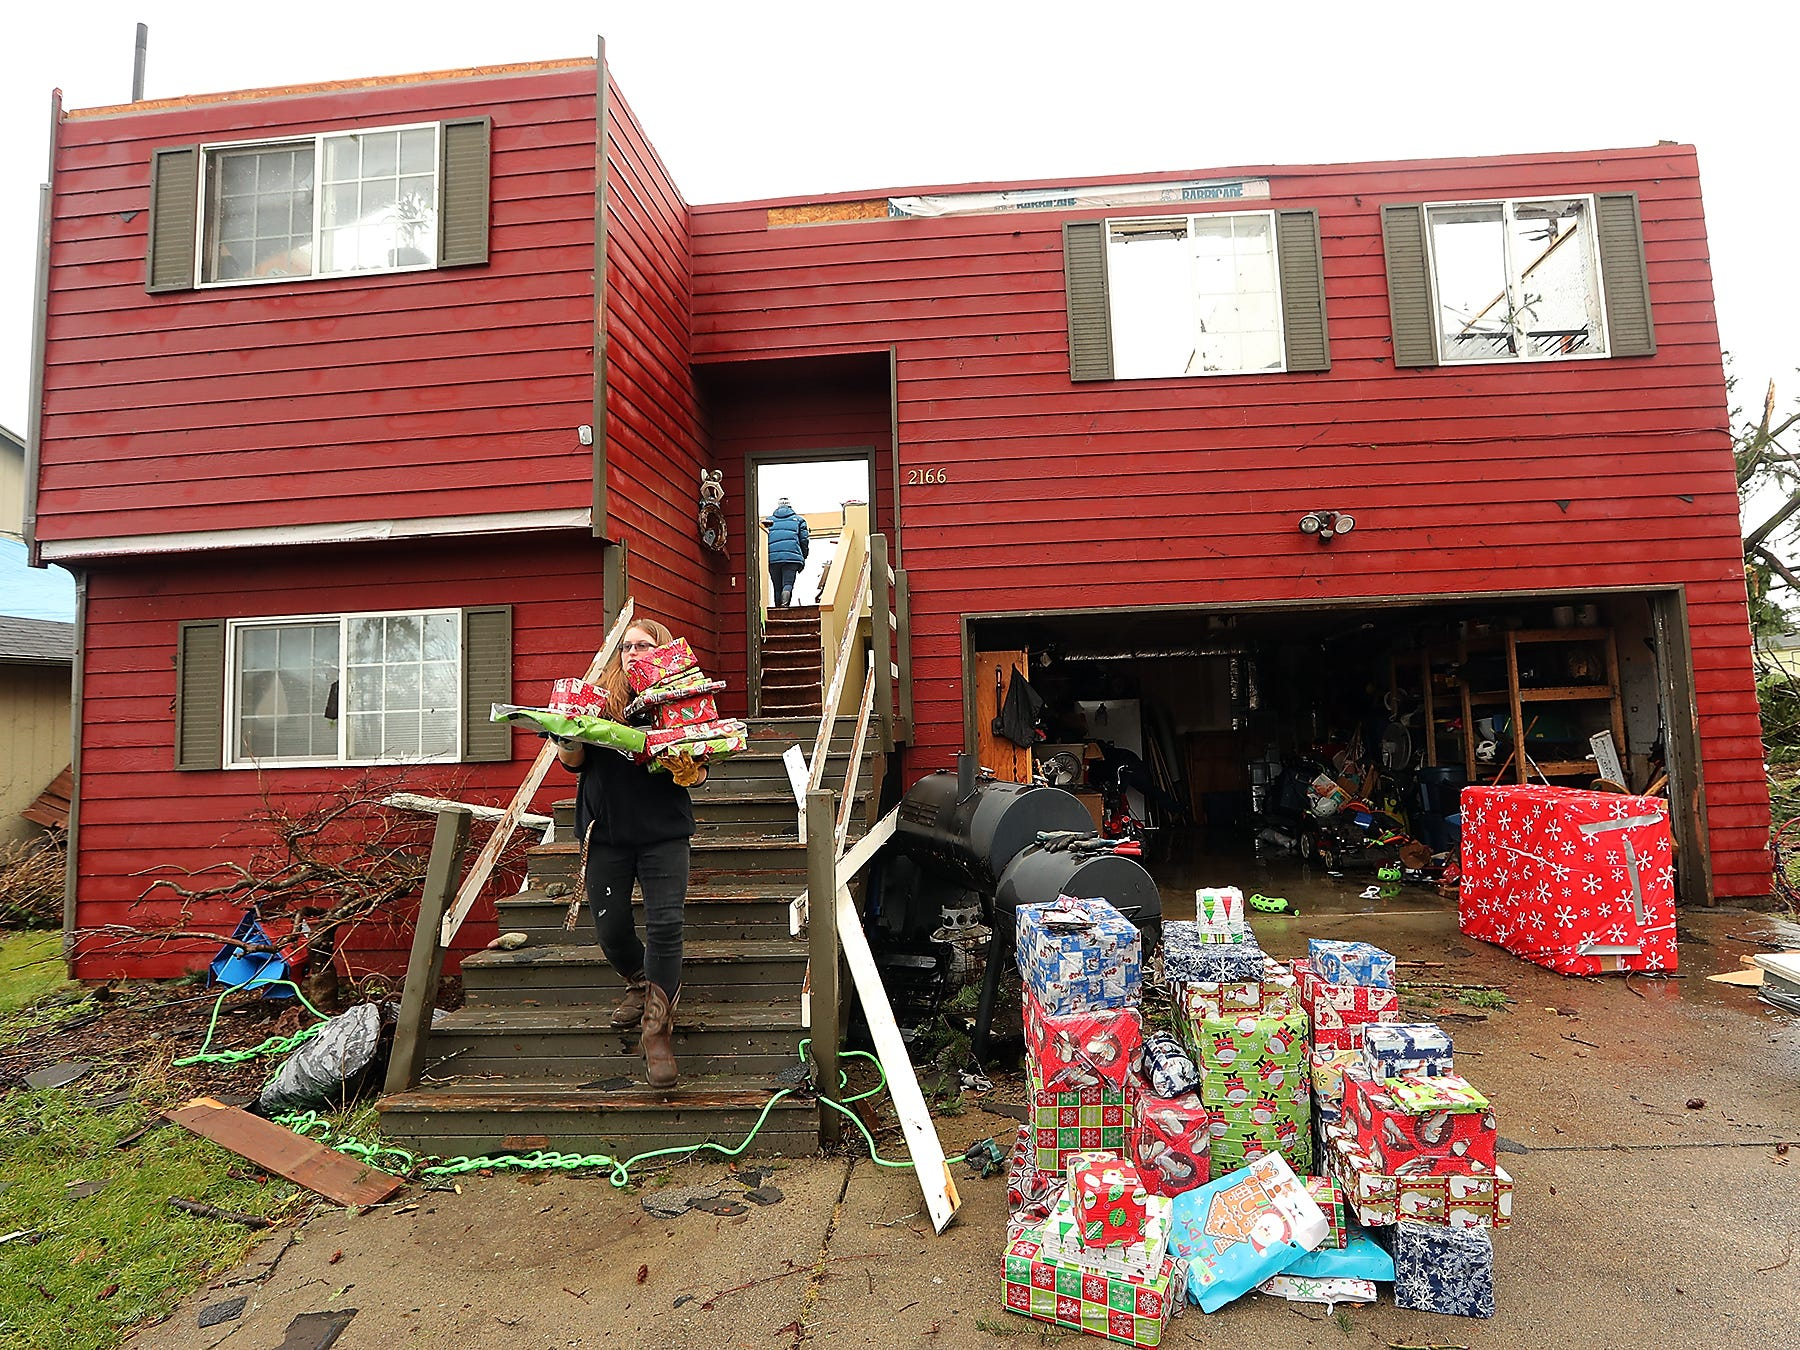 Hannah Mueller carries Christmas presents to the driveway of her parent's home as she helps salvage what they can from their now roofless structure on Tiburon Court in Port Orchard, Washington on Wednesday, December 19, 2018. A tornado touched down in the area on Tuesday.